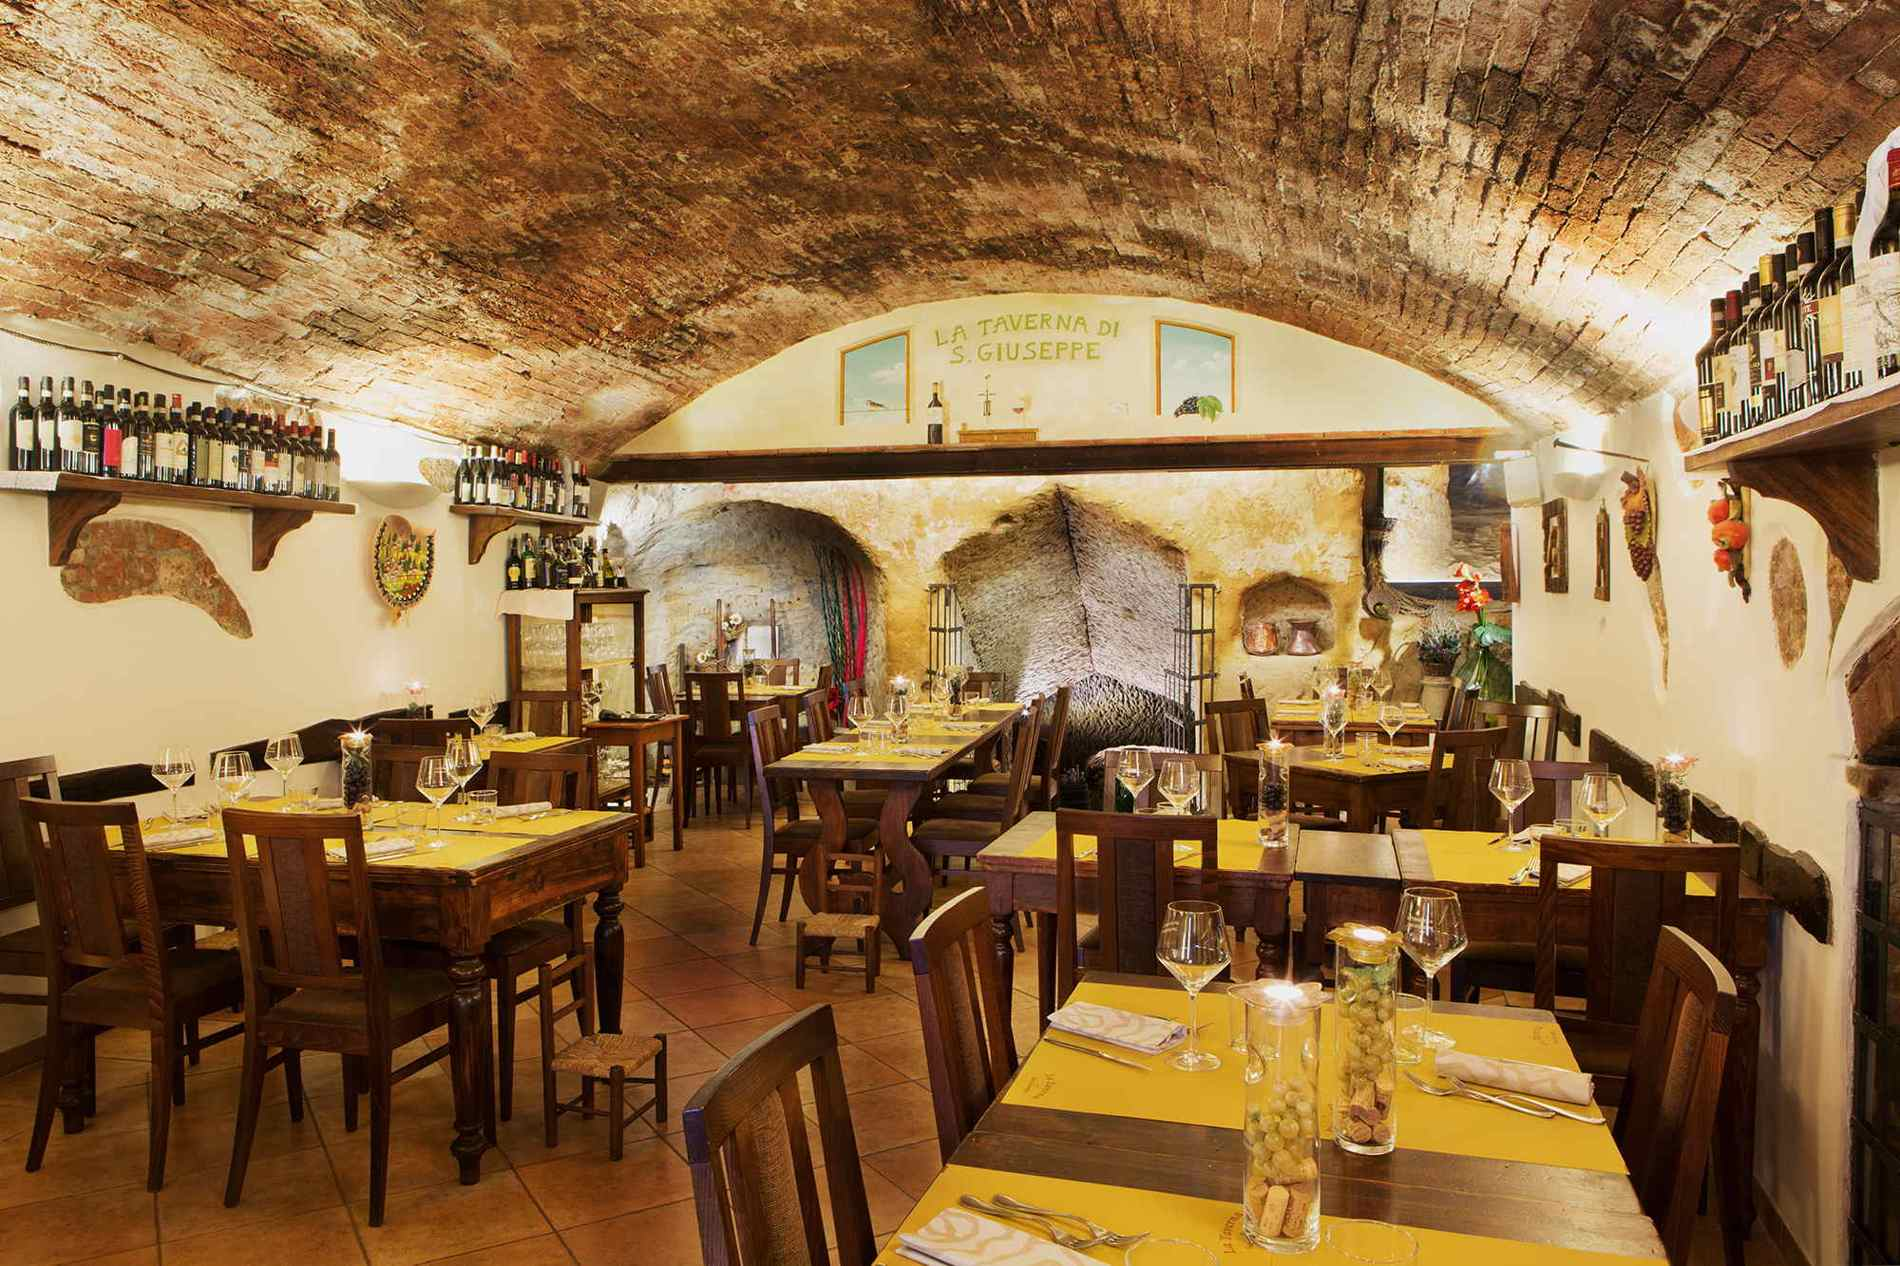 10 of the greatest restaurants in siena italy for Italian interior design company names